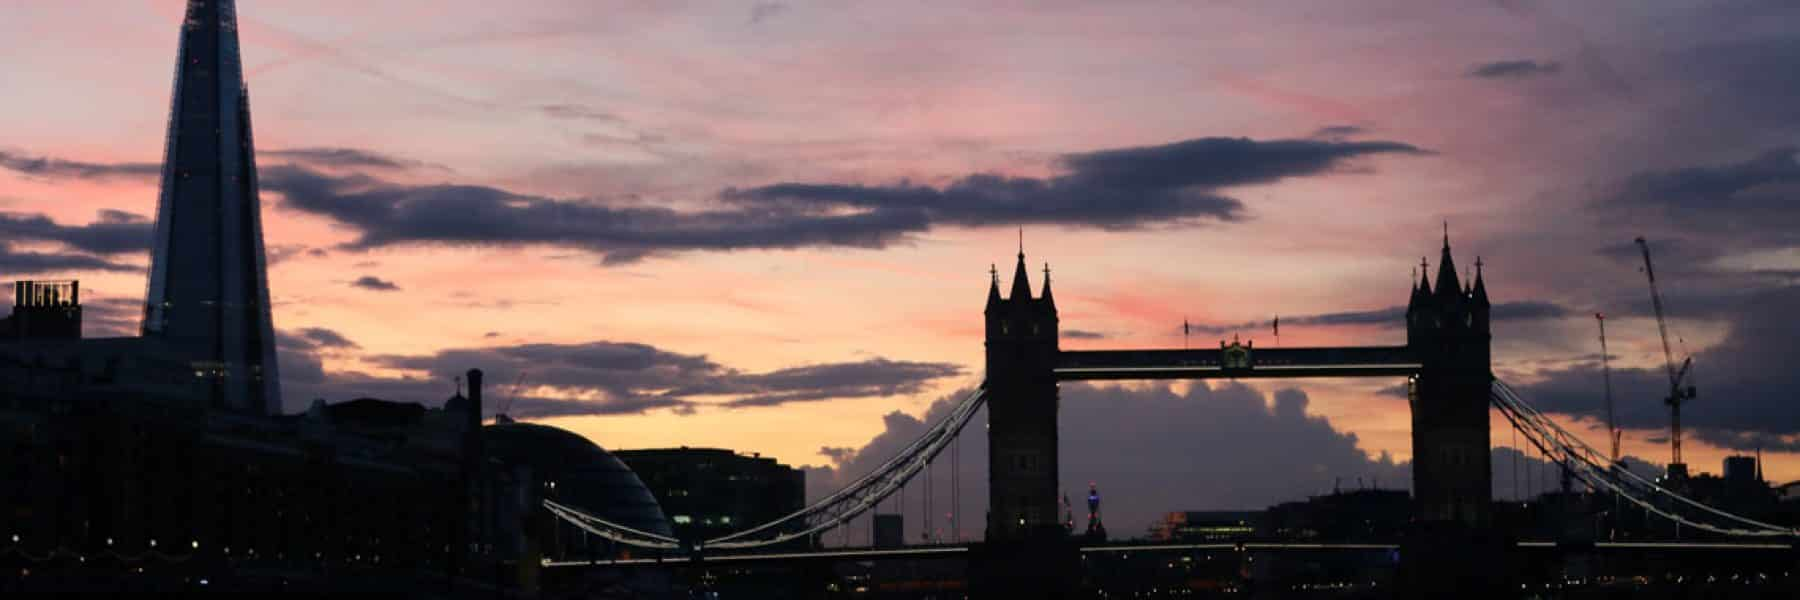 The Shard & Tower Bridge at sunset